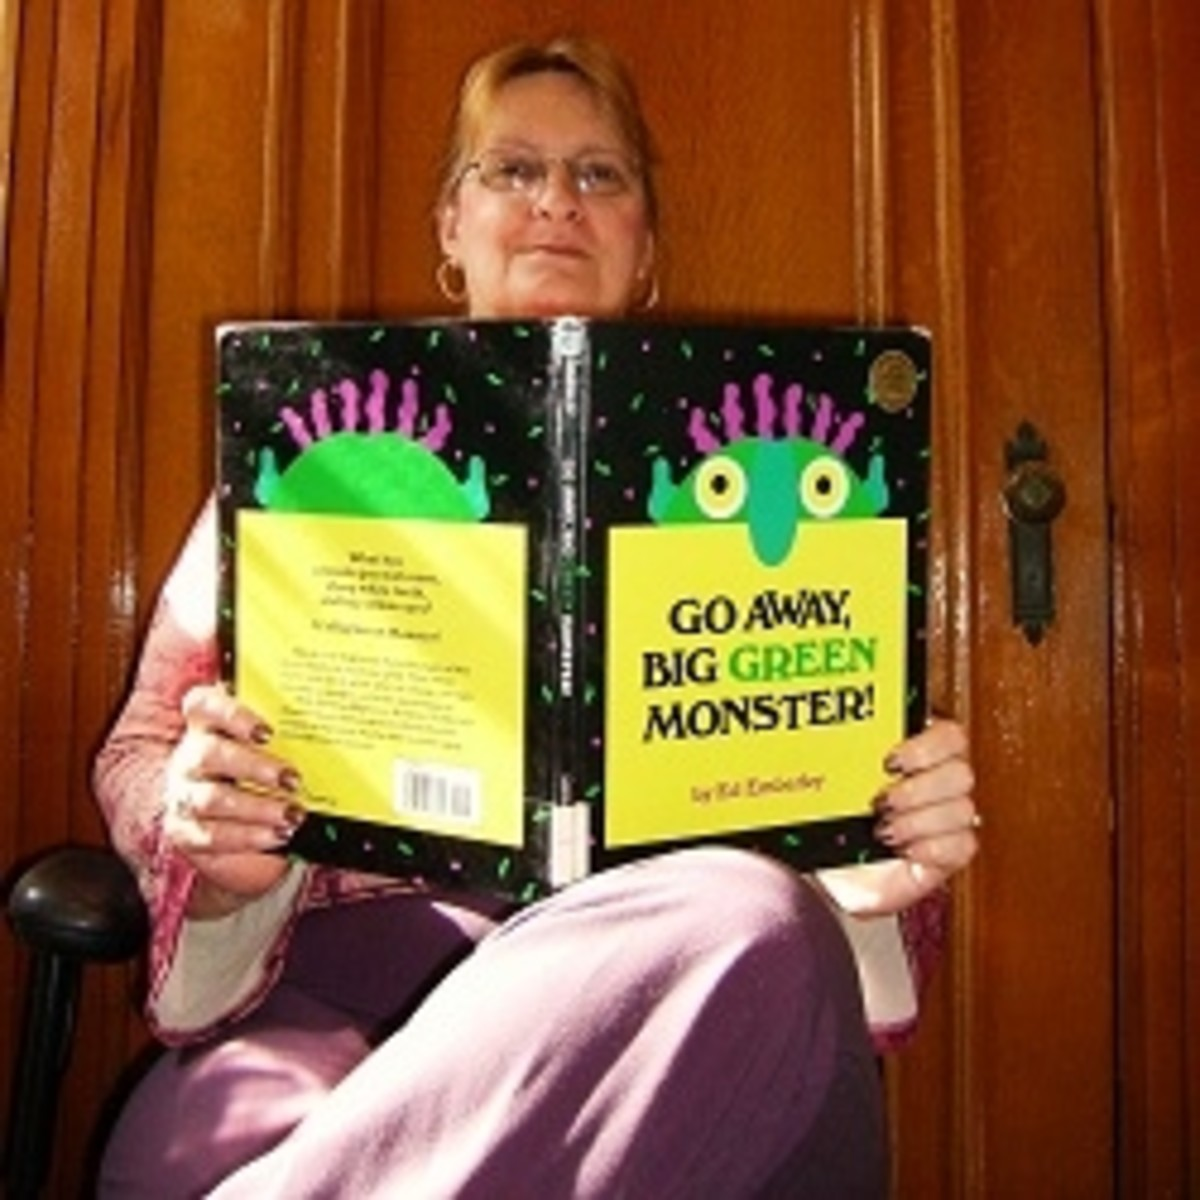 Reading about Monsters